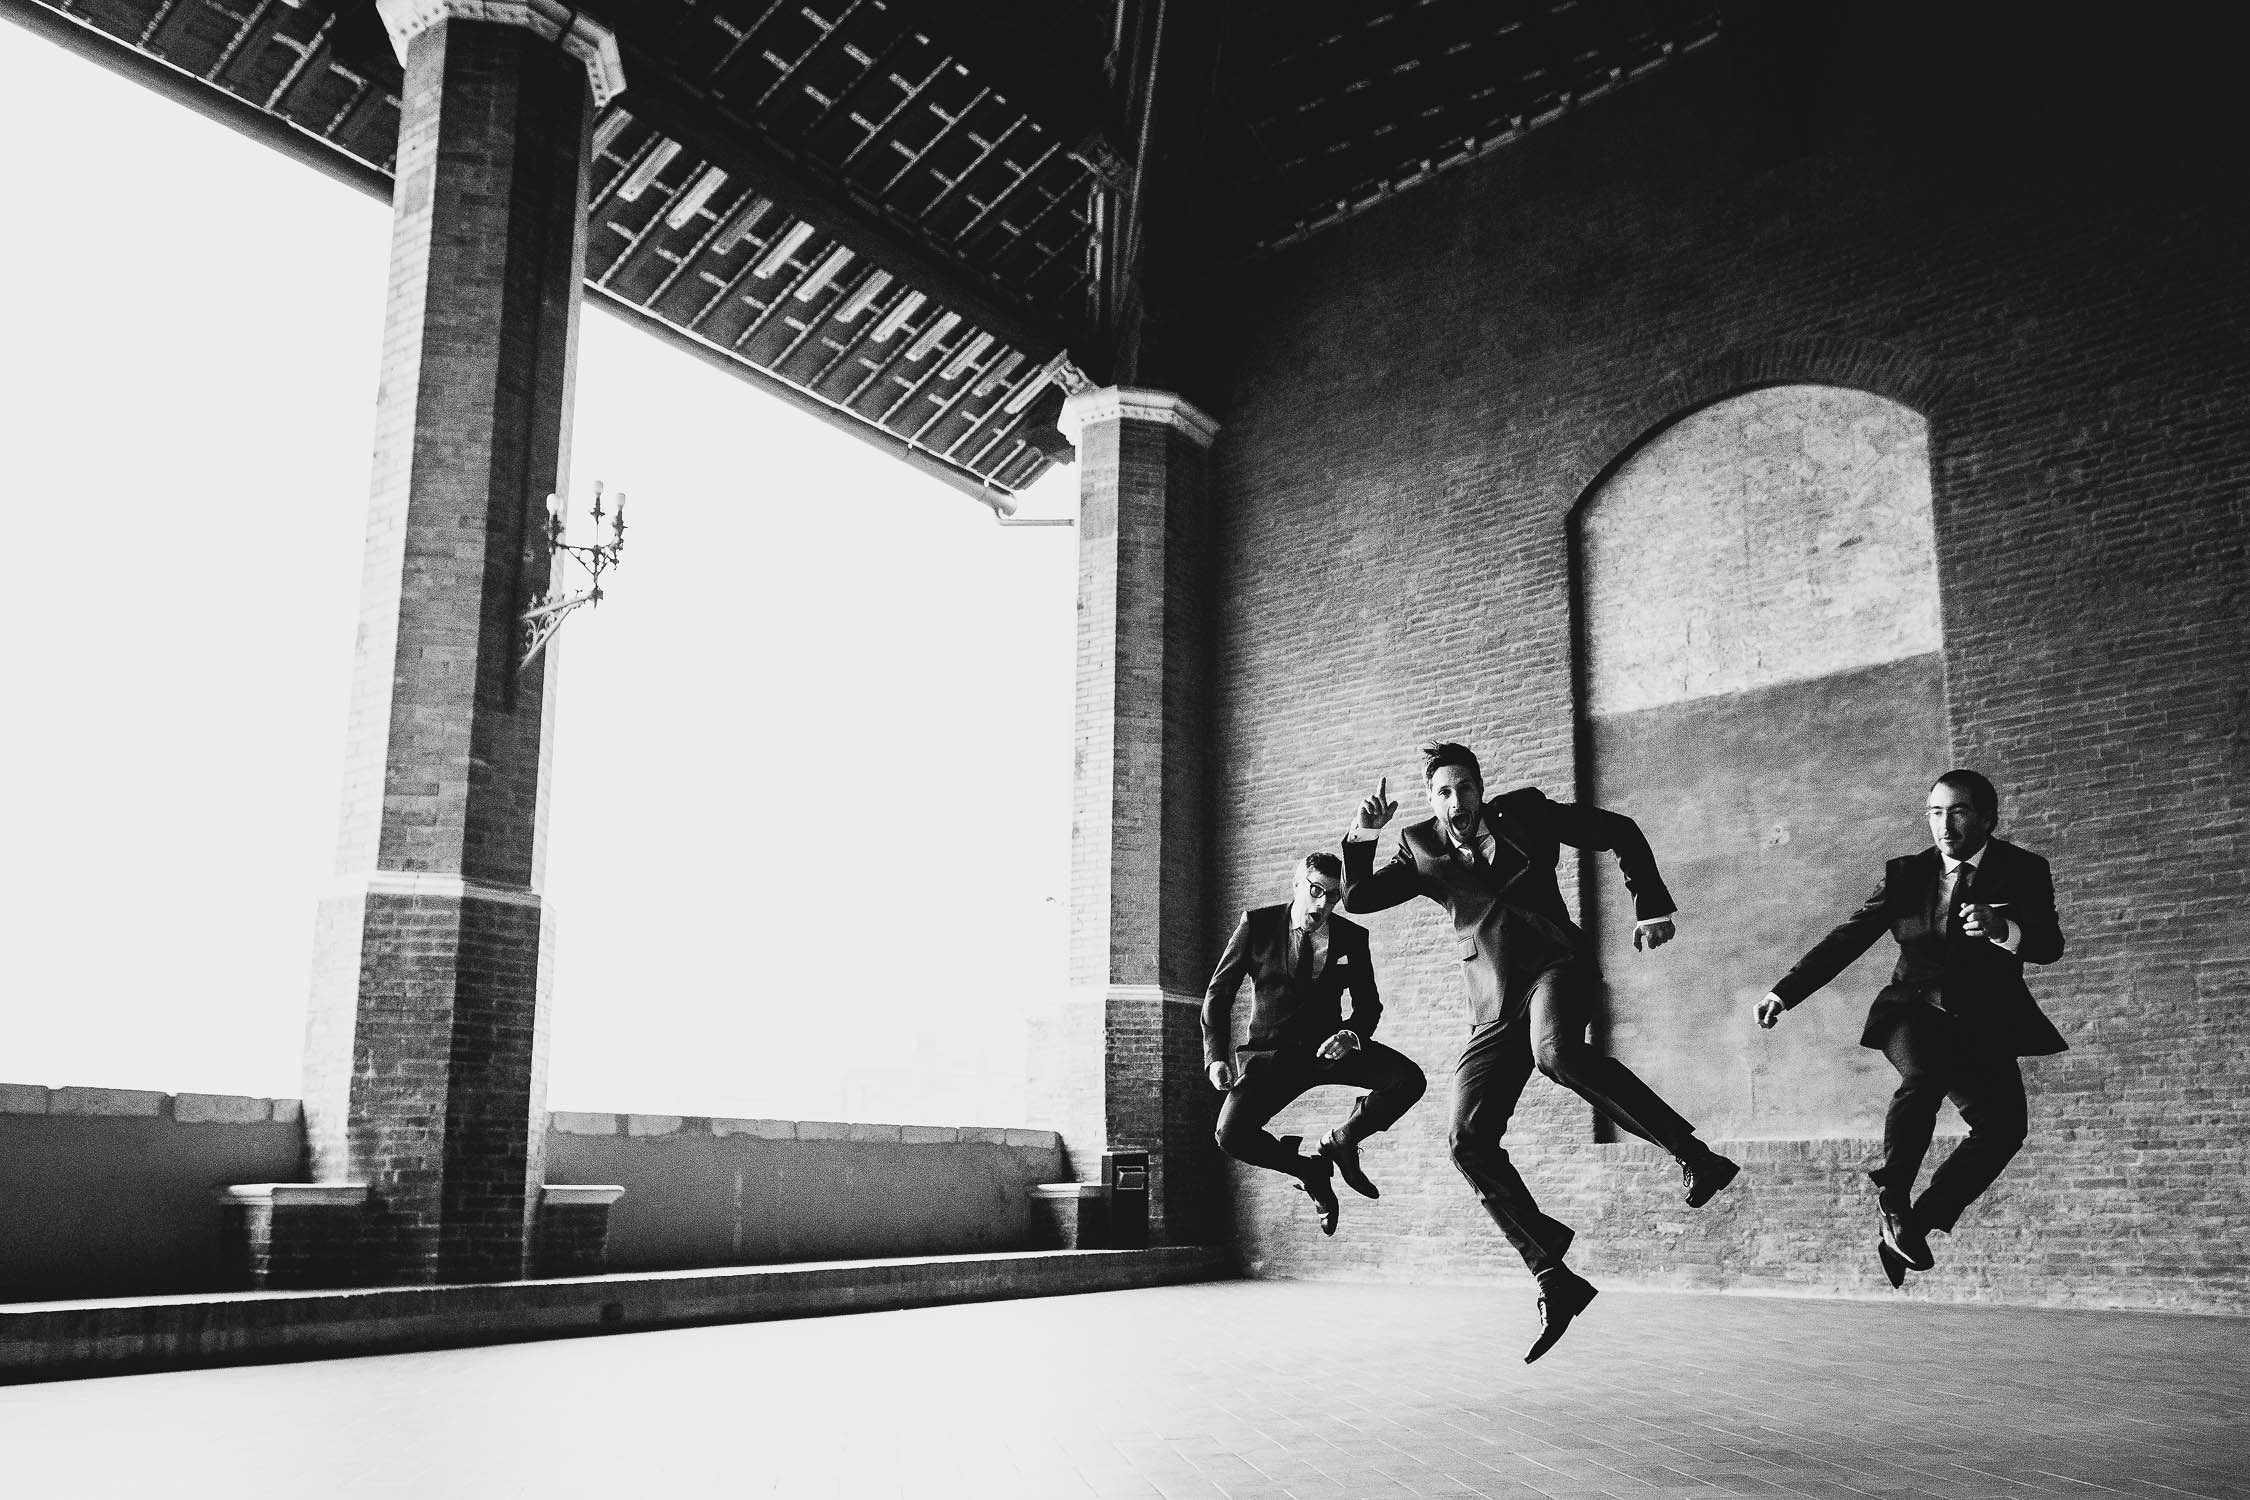 Groom and groomsmen jump just before the civil ceremony into Palazzo Pubblico at Siena